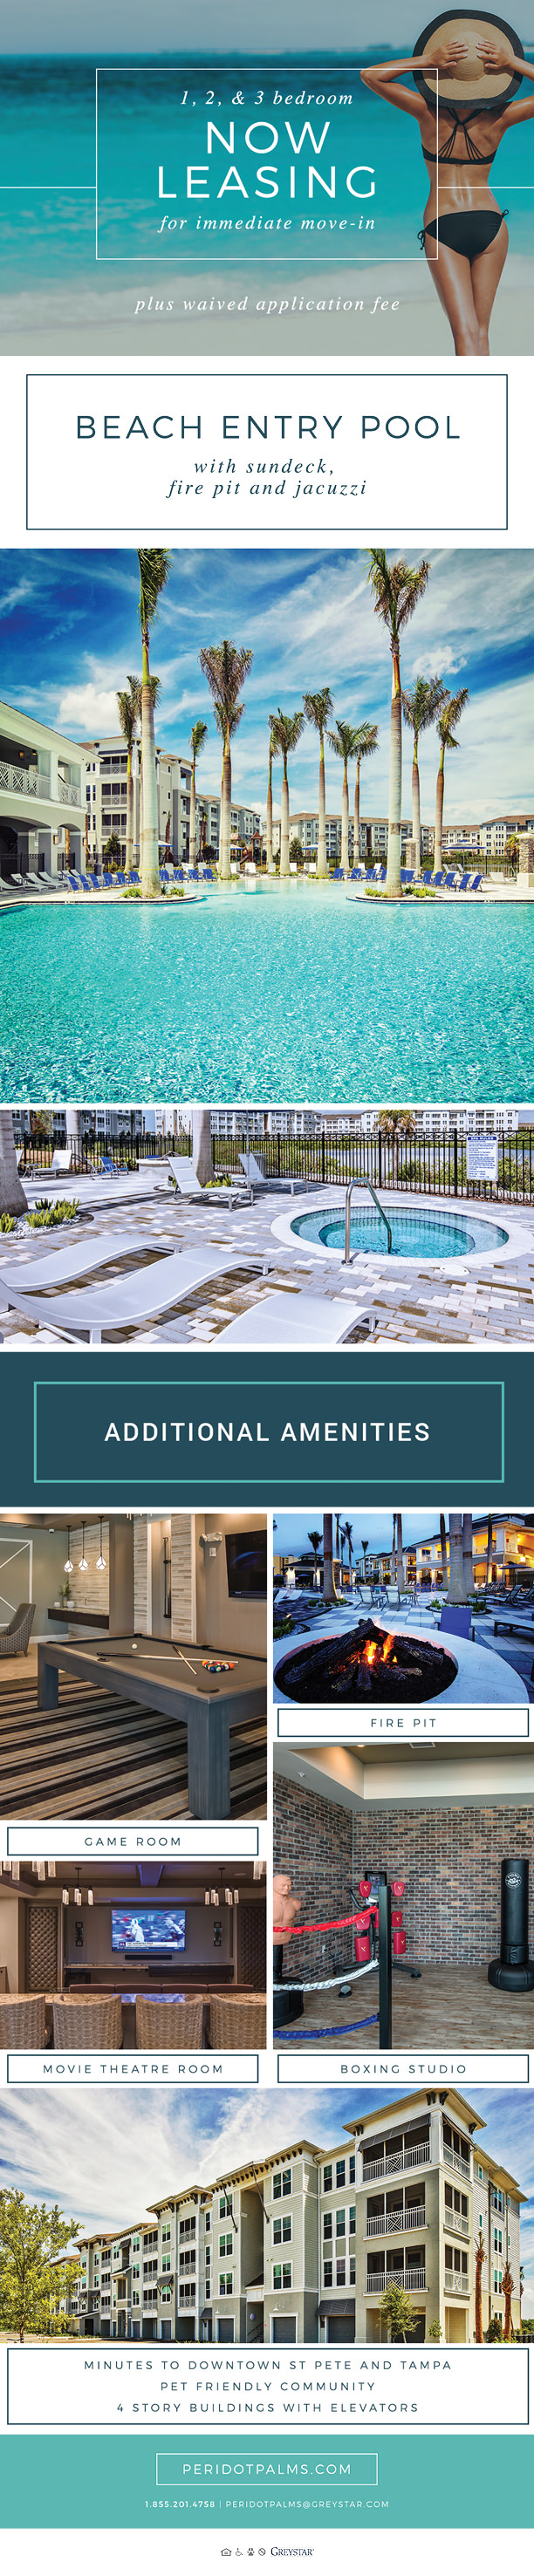 1016-gs-pp-amenities2-pool-merge_mini.jpg